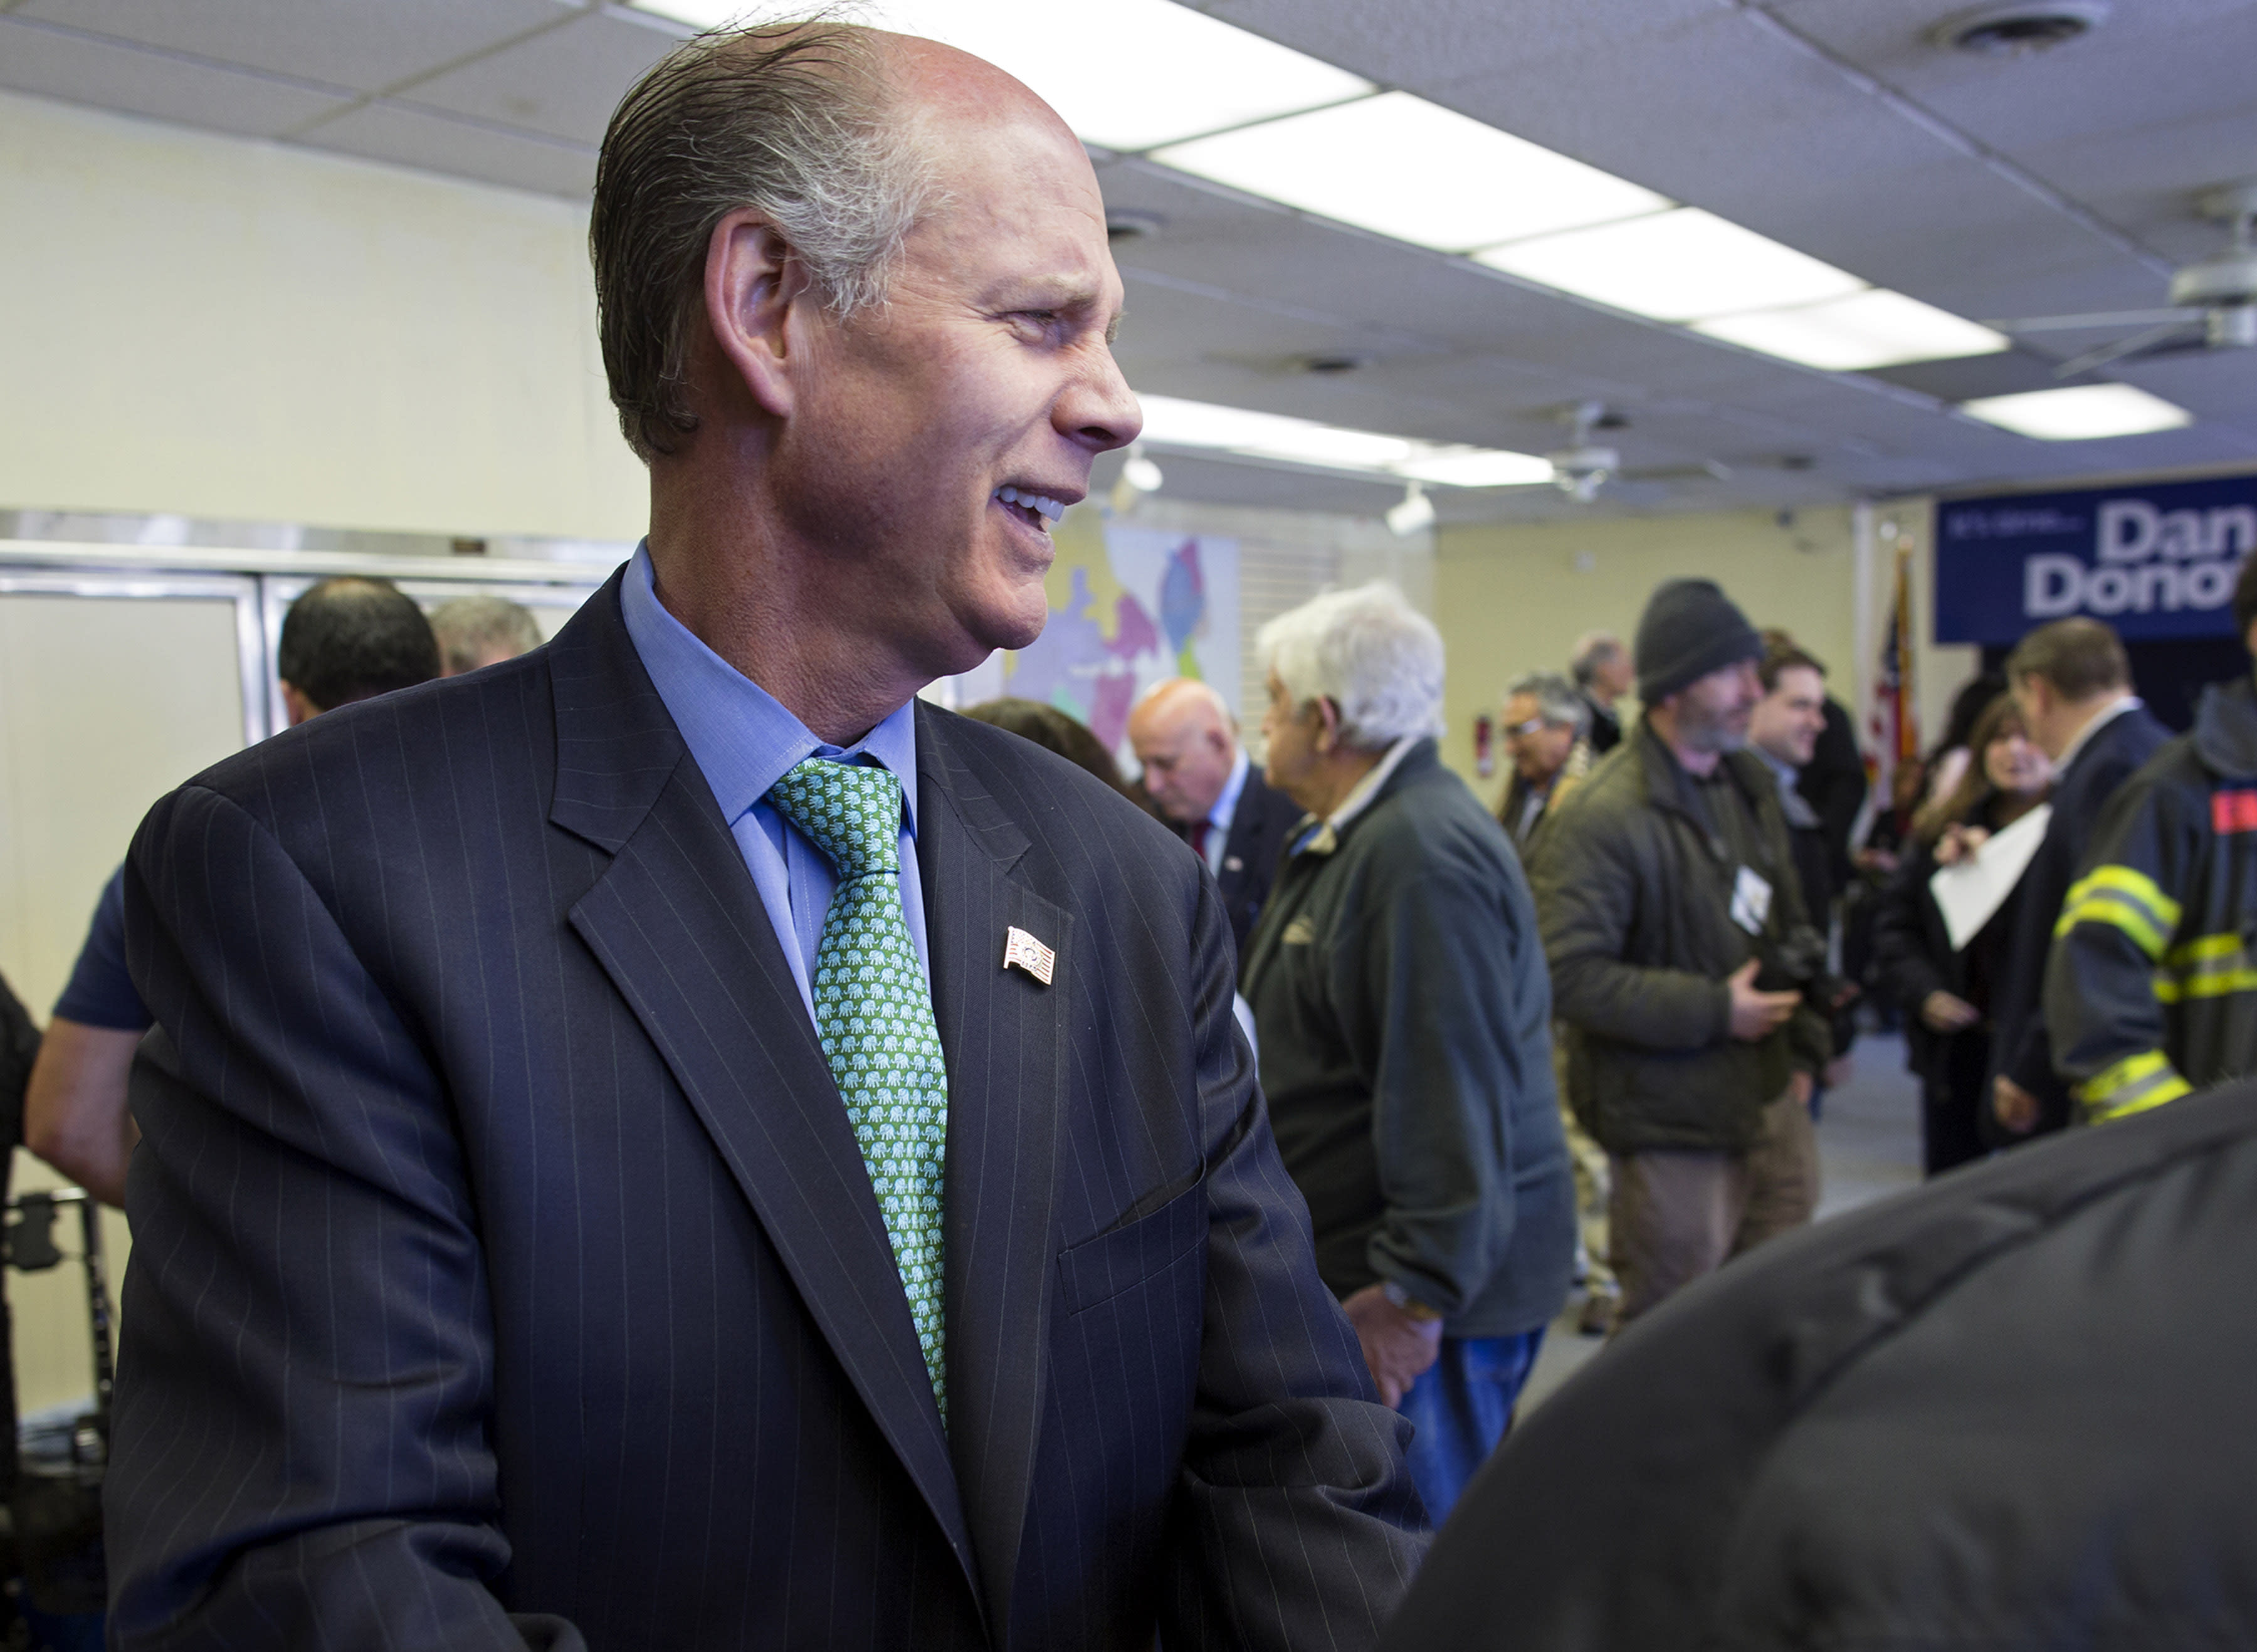 Chokehold case questions follow NY congressional candidate